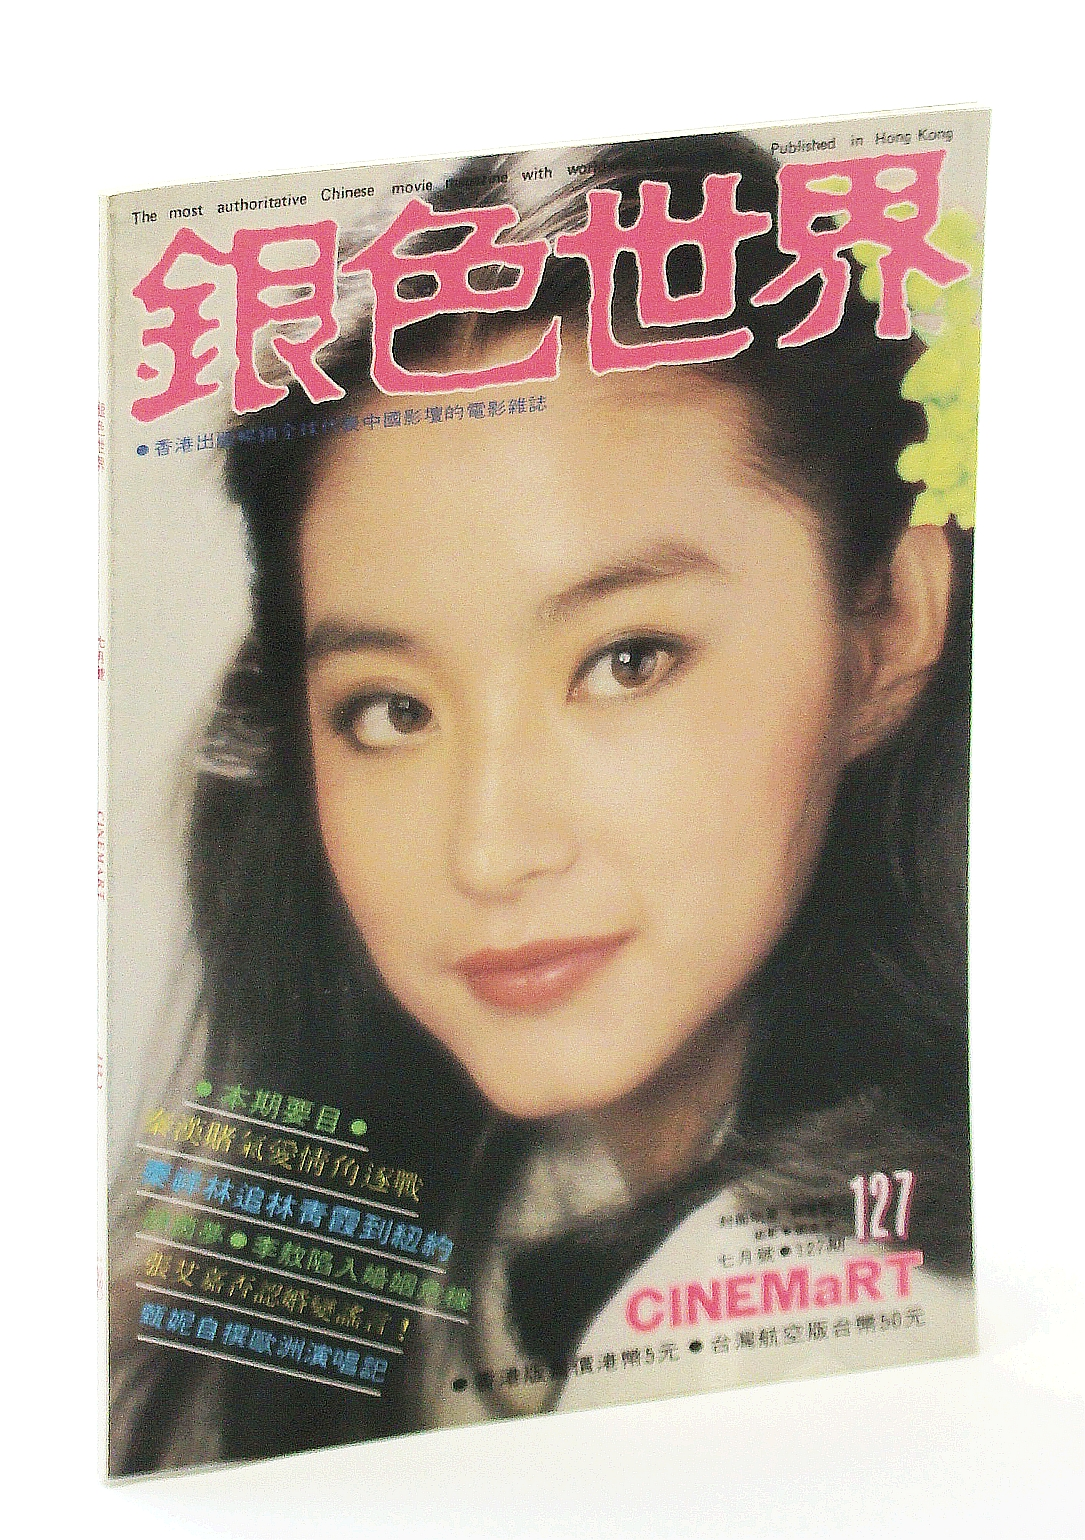 Image for Cinemart - The Most Authoritative Chinese Movie Magazine, July 1980, No. 127